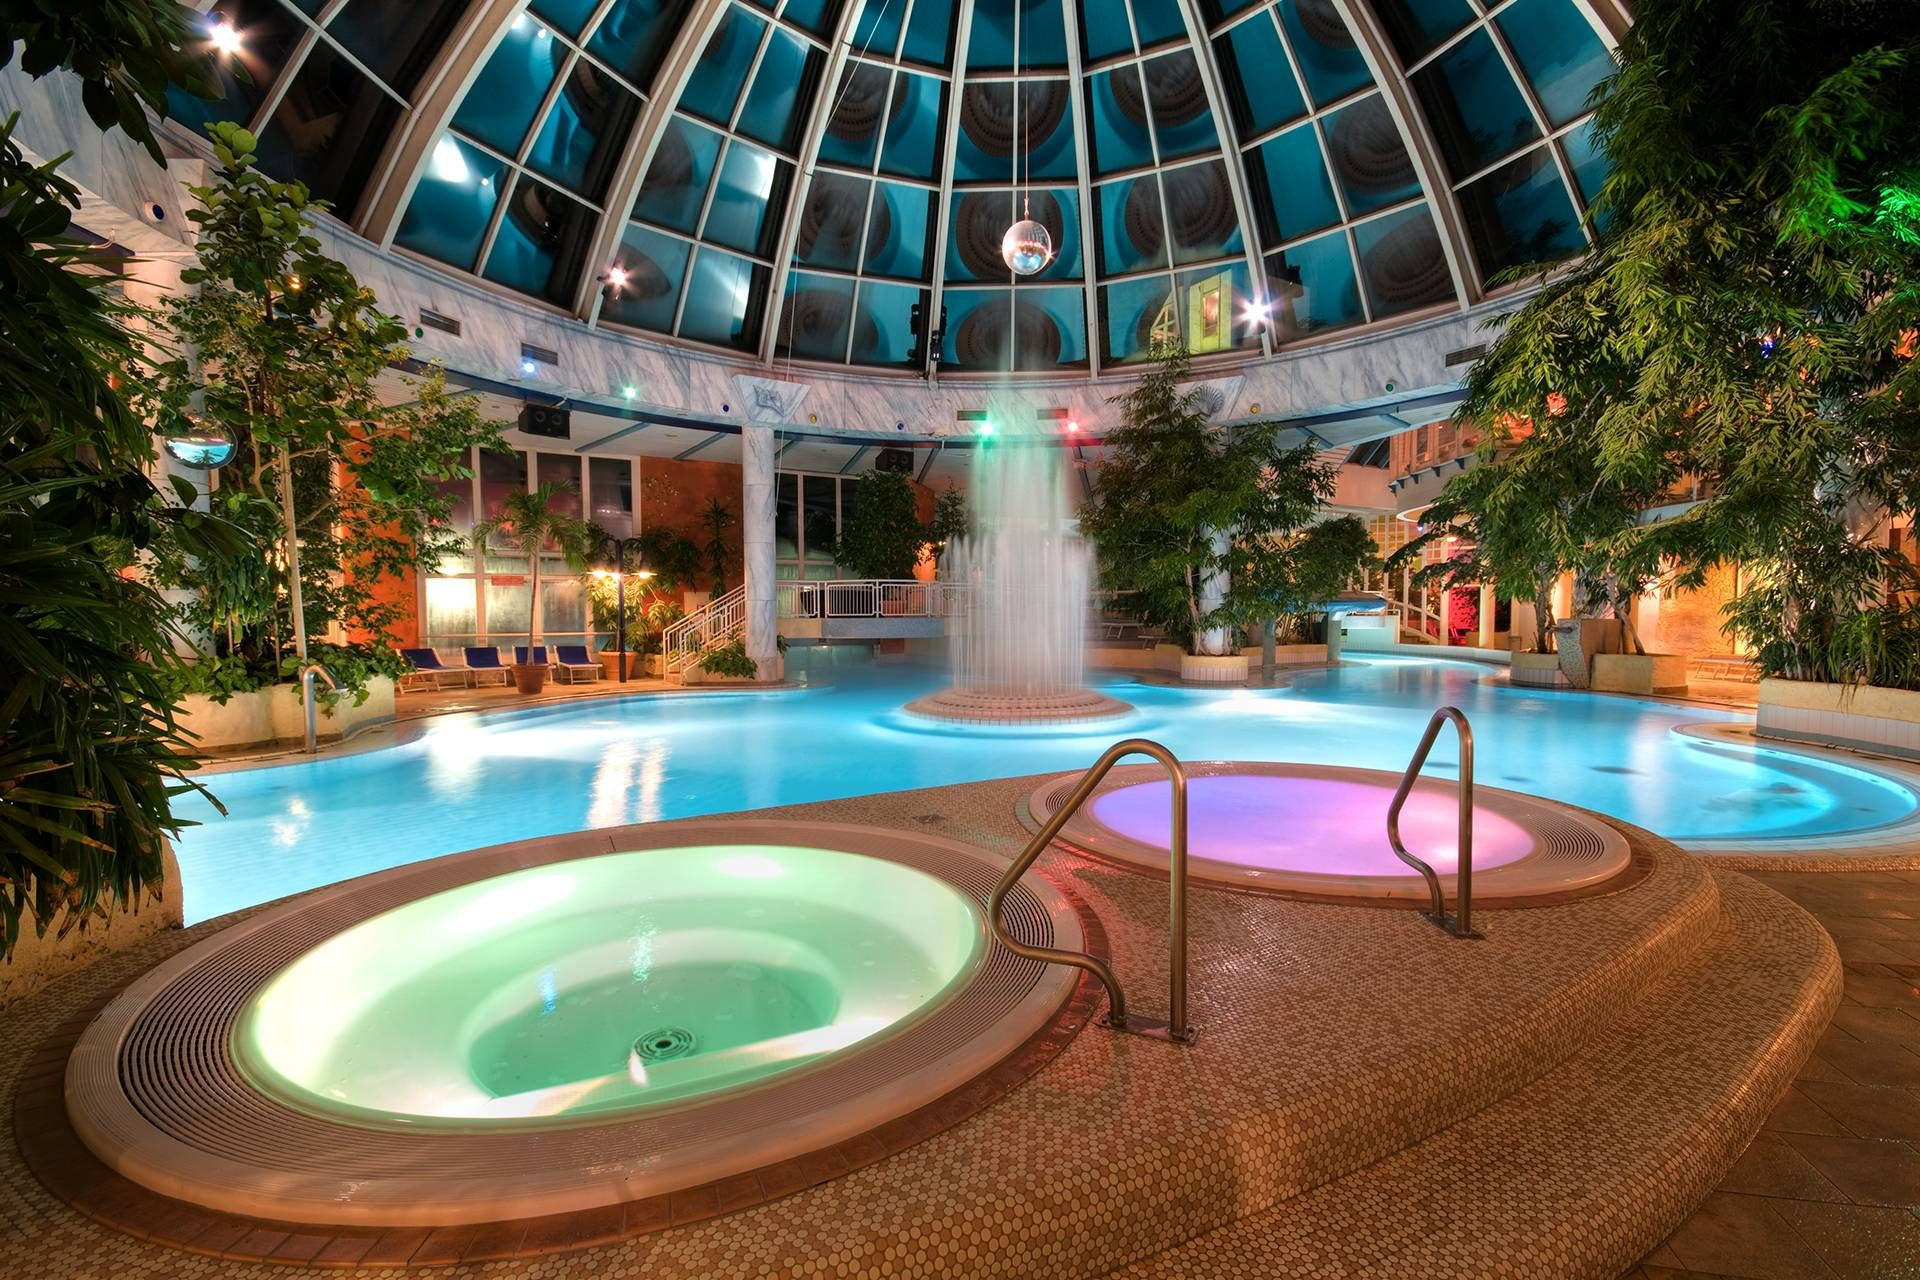 Wellness Bad Dortmund wellnesshotel nrw mit therme in bad lippspringe entspannung